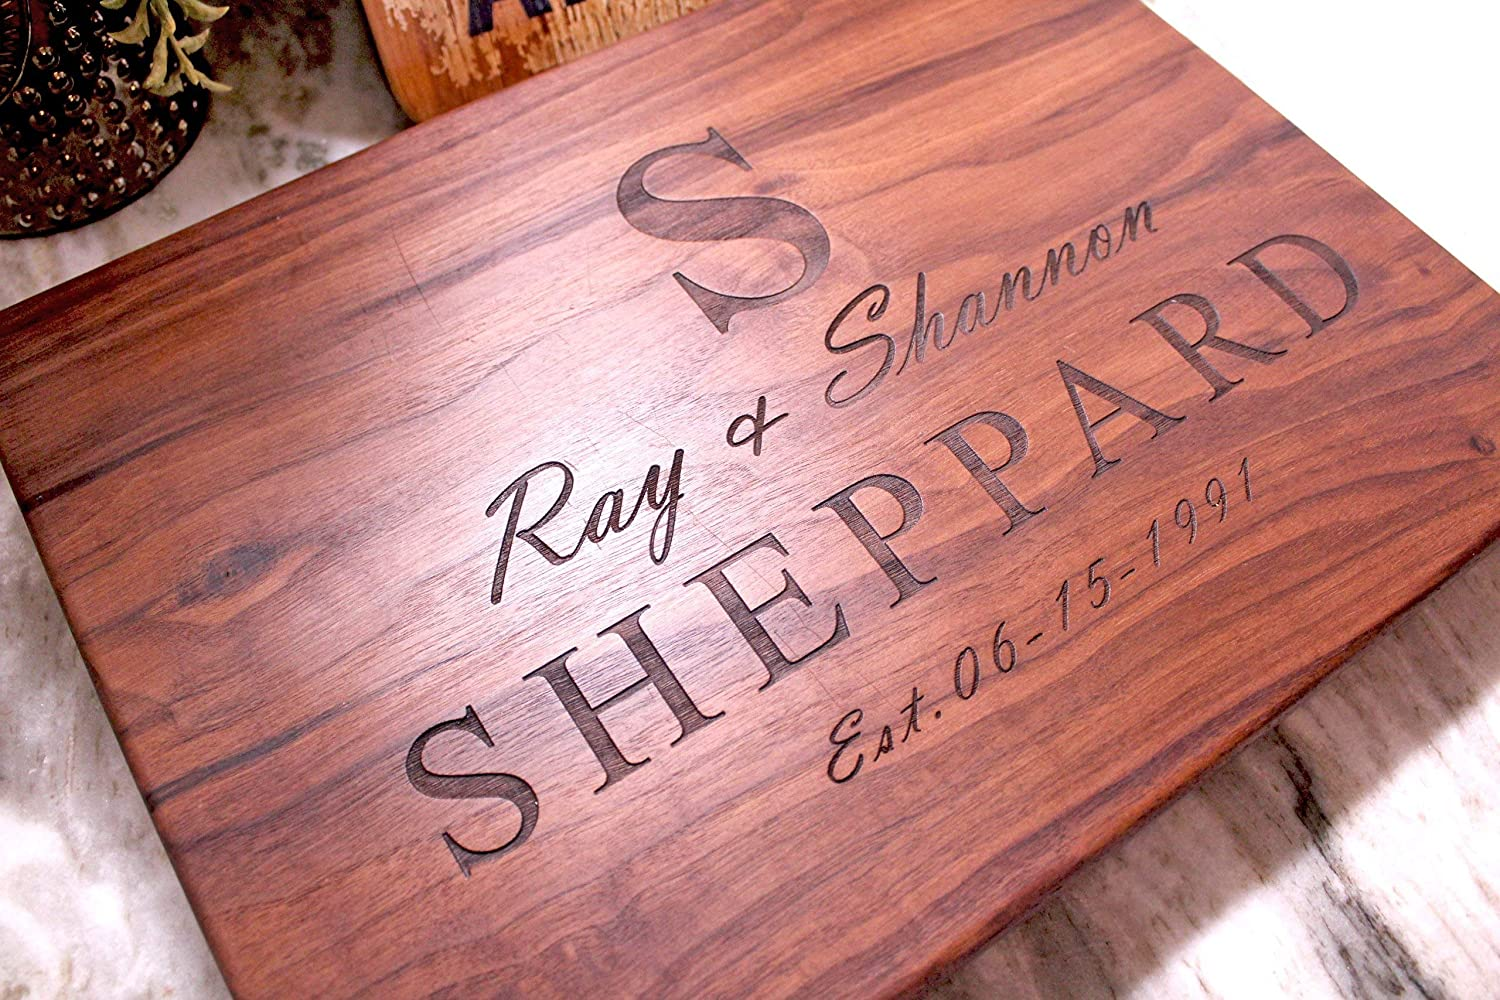 Anniversary gift or Wedding Gift, Personalized Cutting Board Designed as Wedding Gifts for the Couple or Wedding Anniversary Gifts for your Husband or Wife.